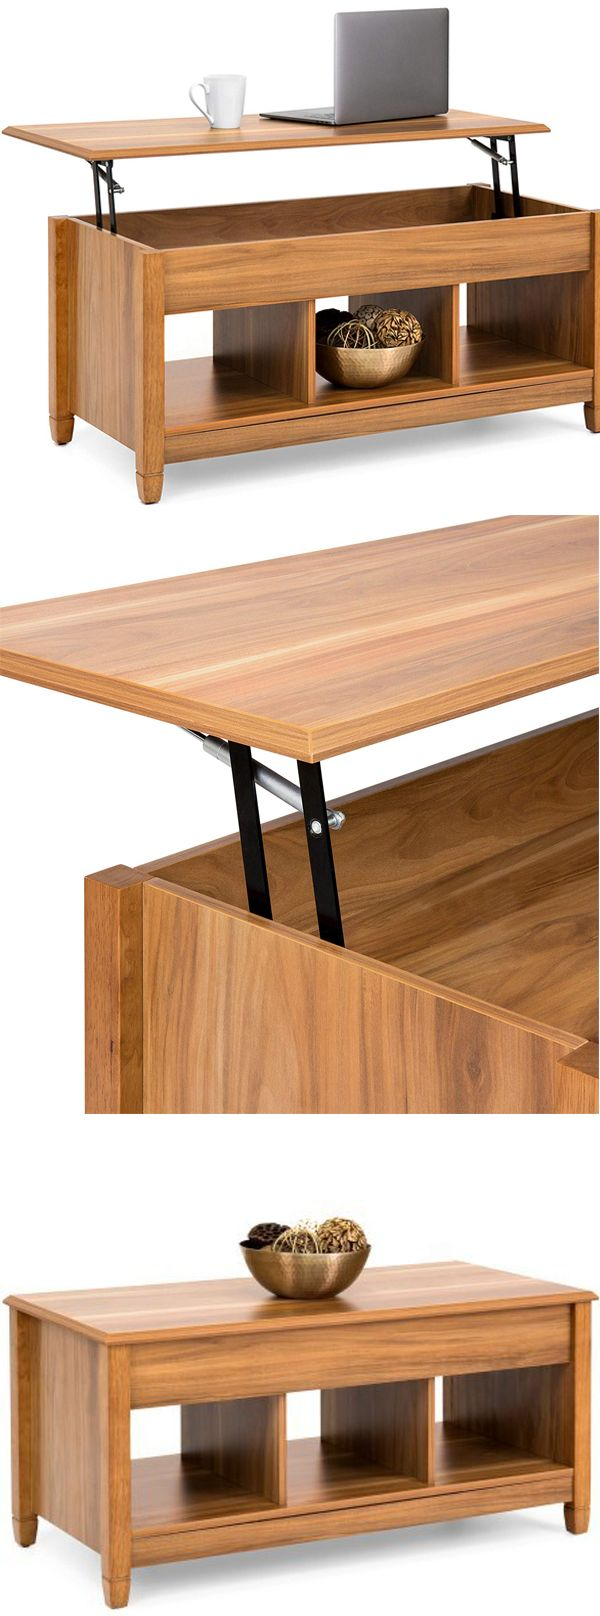 Storage Coffee Table With Lift Top And Open Cubbies Versatile And Durable Rectangle Shape Hidden Storage Saves Coffee Table With Storage Coffee Table Home [ 1616 x 600 Pixel ]